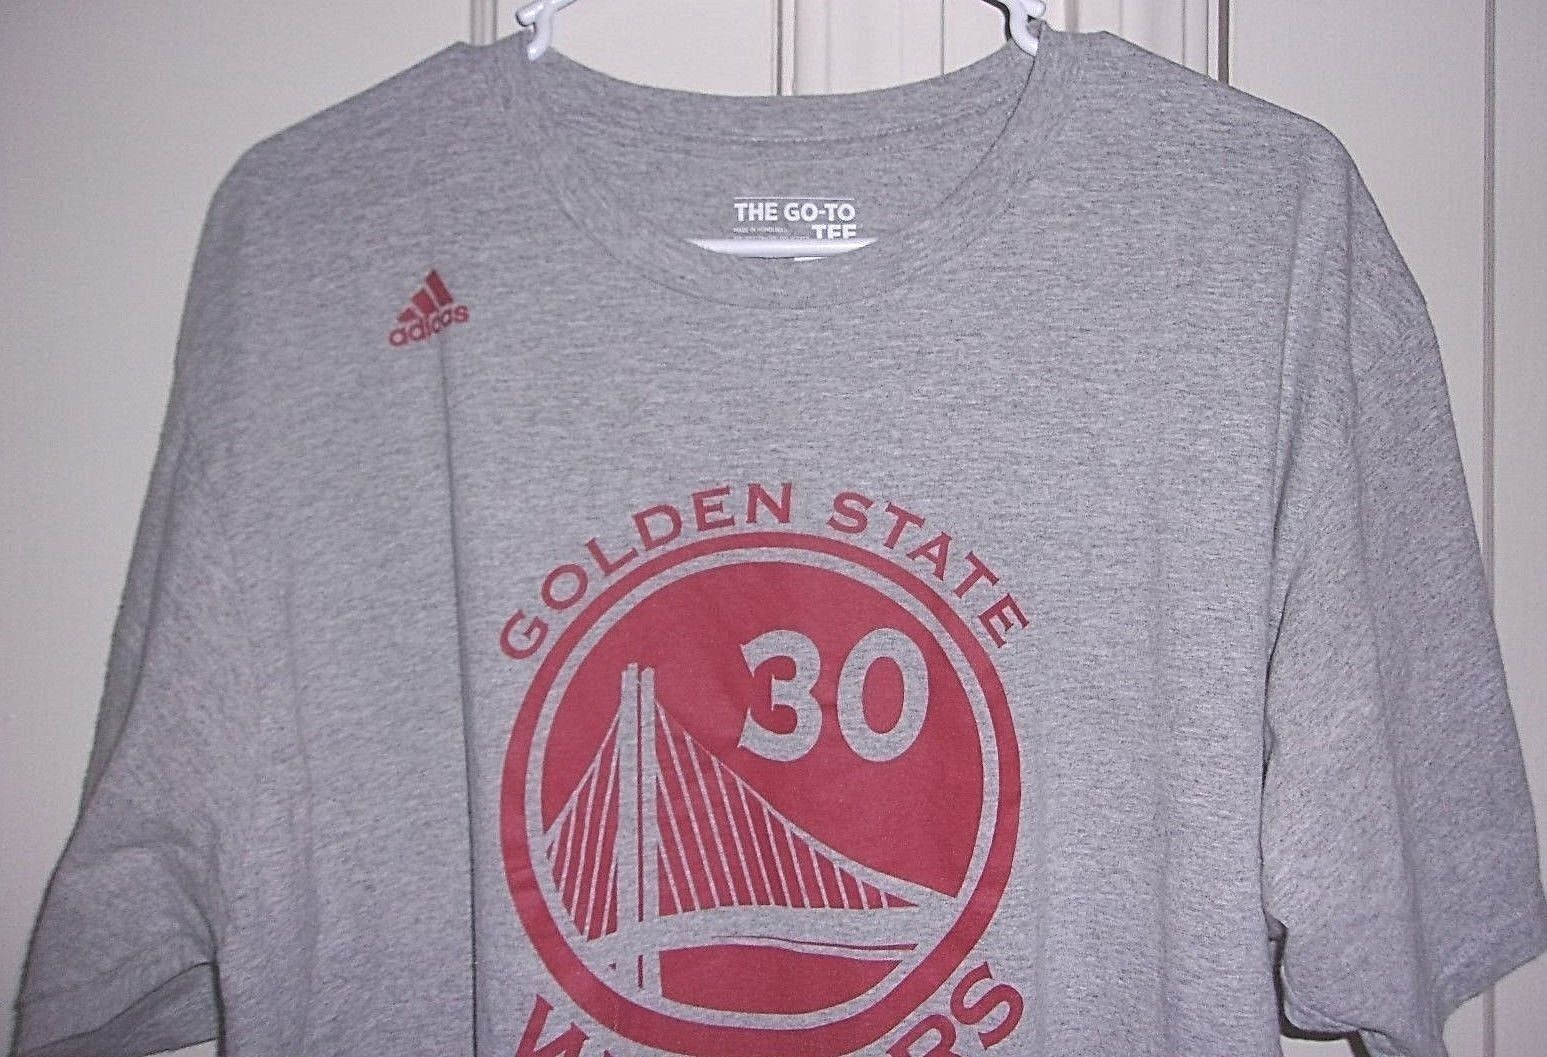 low priced 7aac4 ffa7a Adidas Mens XL Seth Curry Golden State Warriors Graphic T Shirt